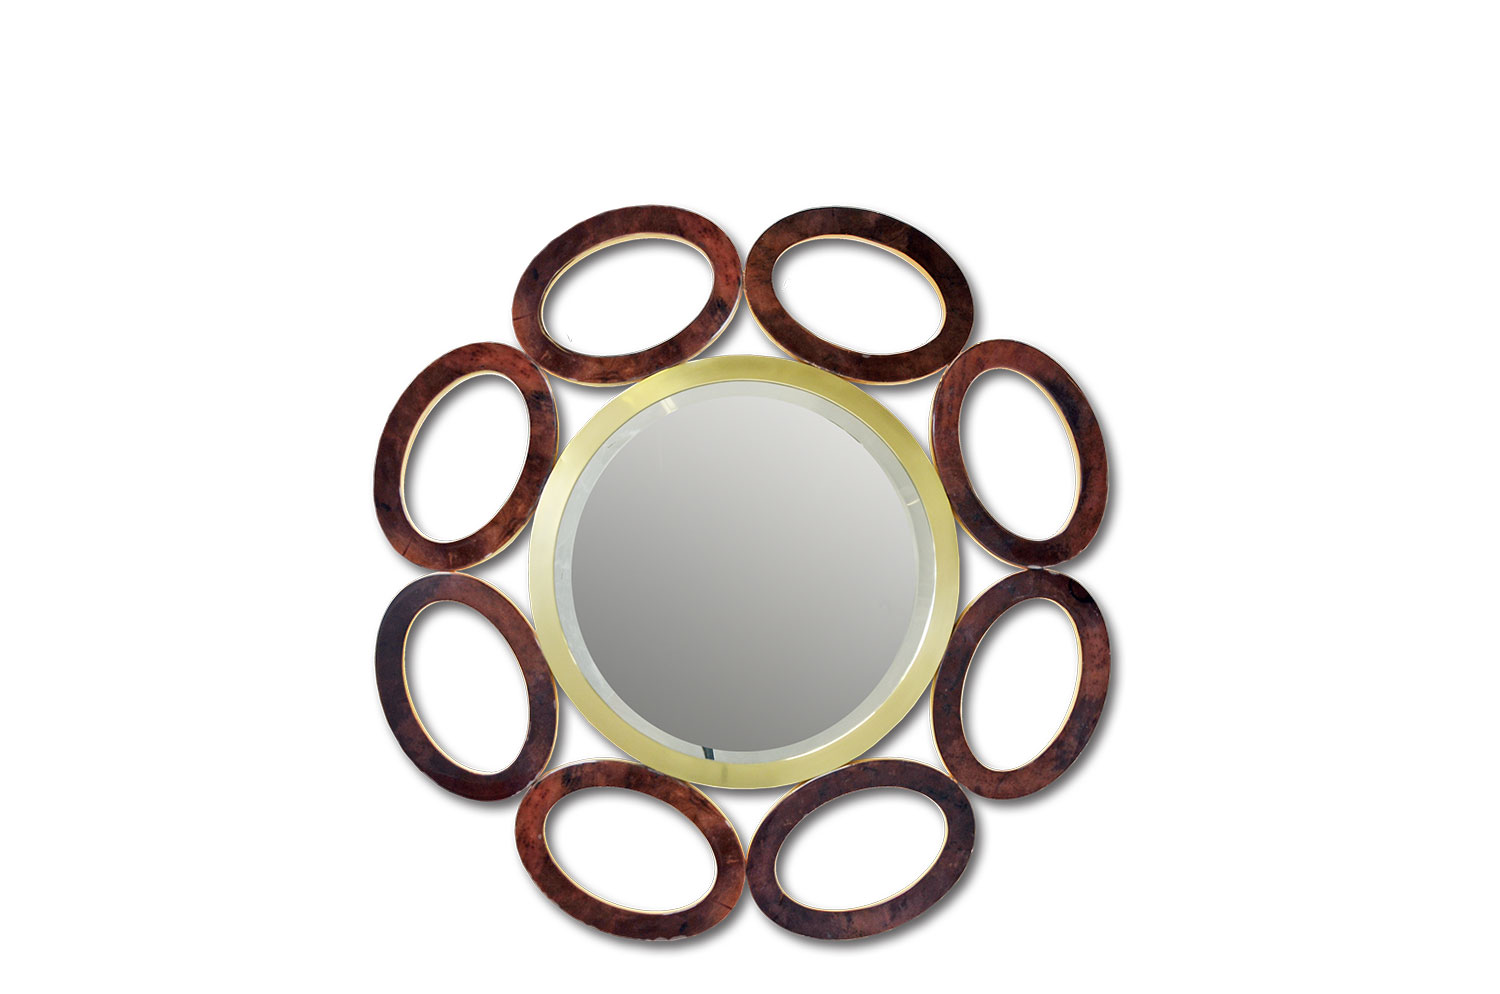 Elliptical Mirror - Goatskin / Gold Leaf 0